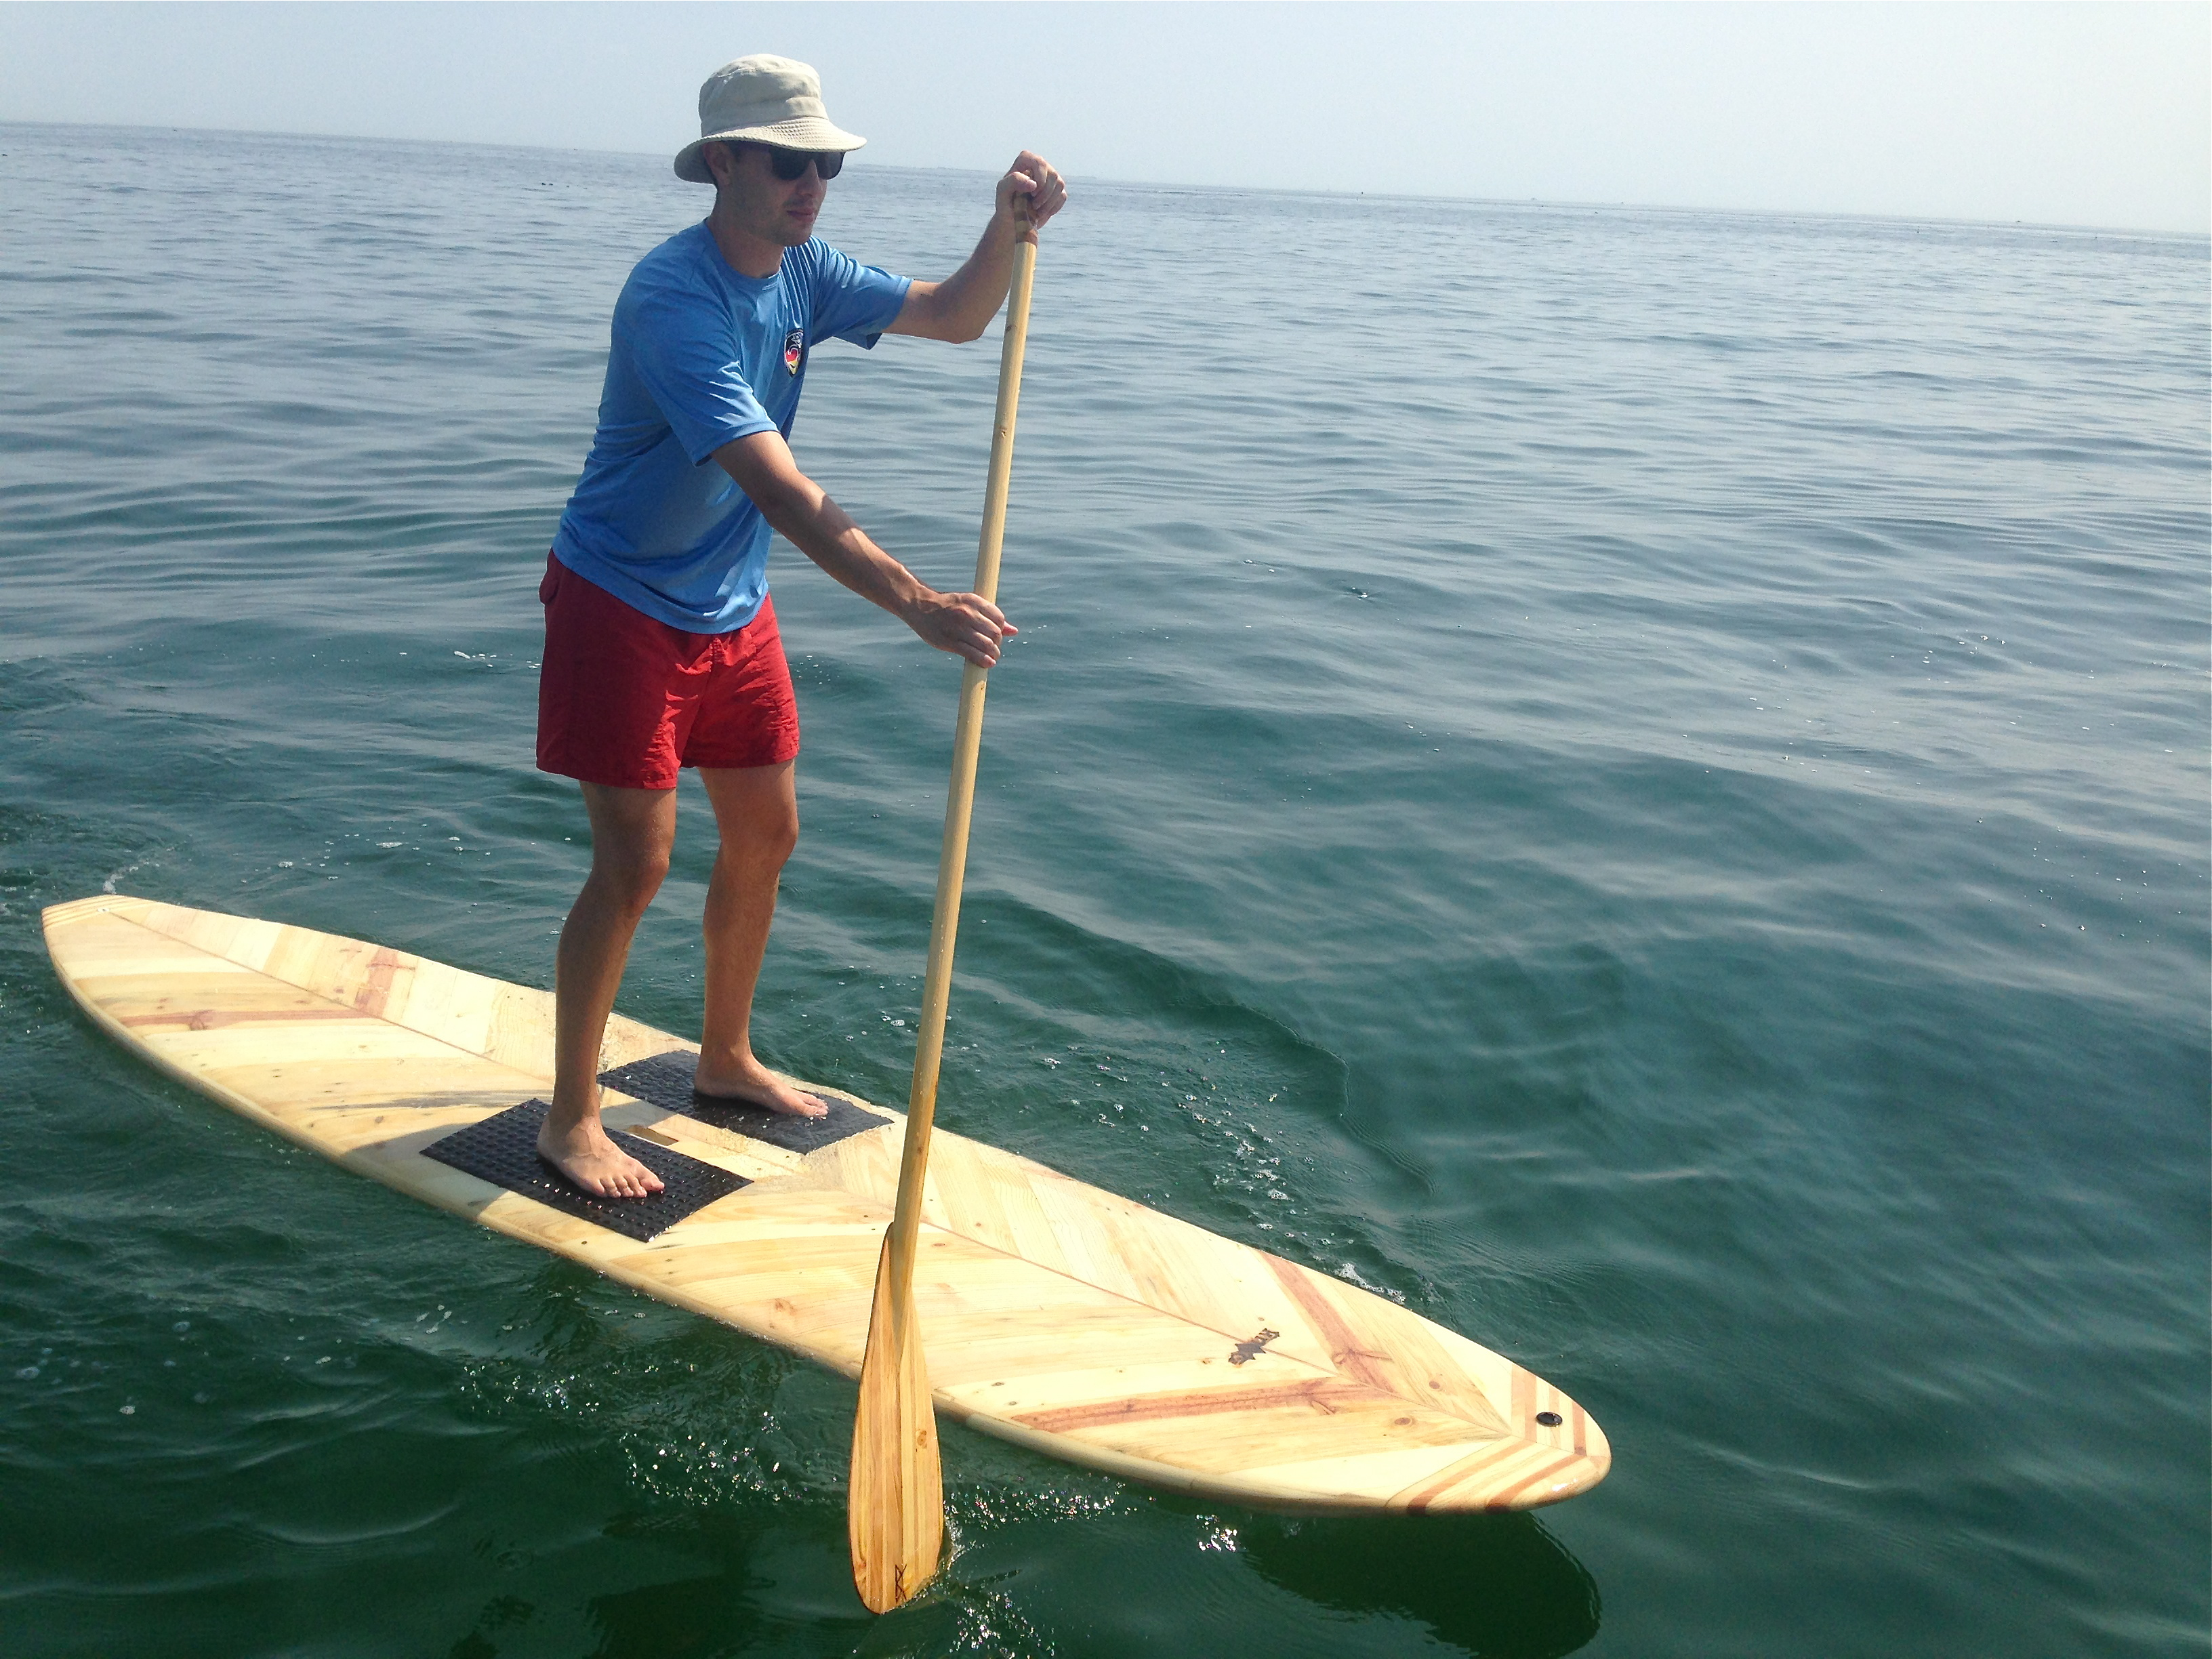 Stand up paddle board ornament - 11 Ft Hollow Stand Up Paddle Sup Board